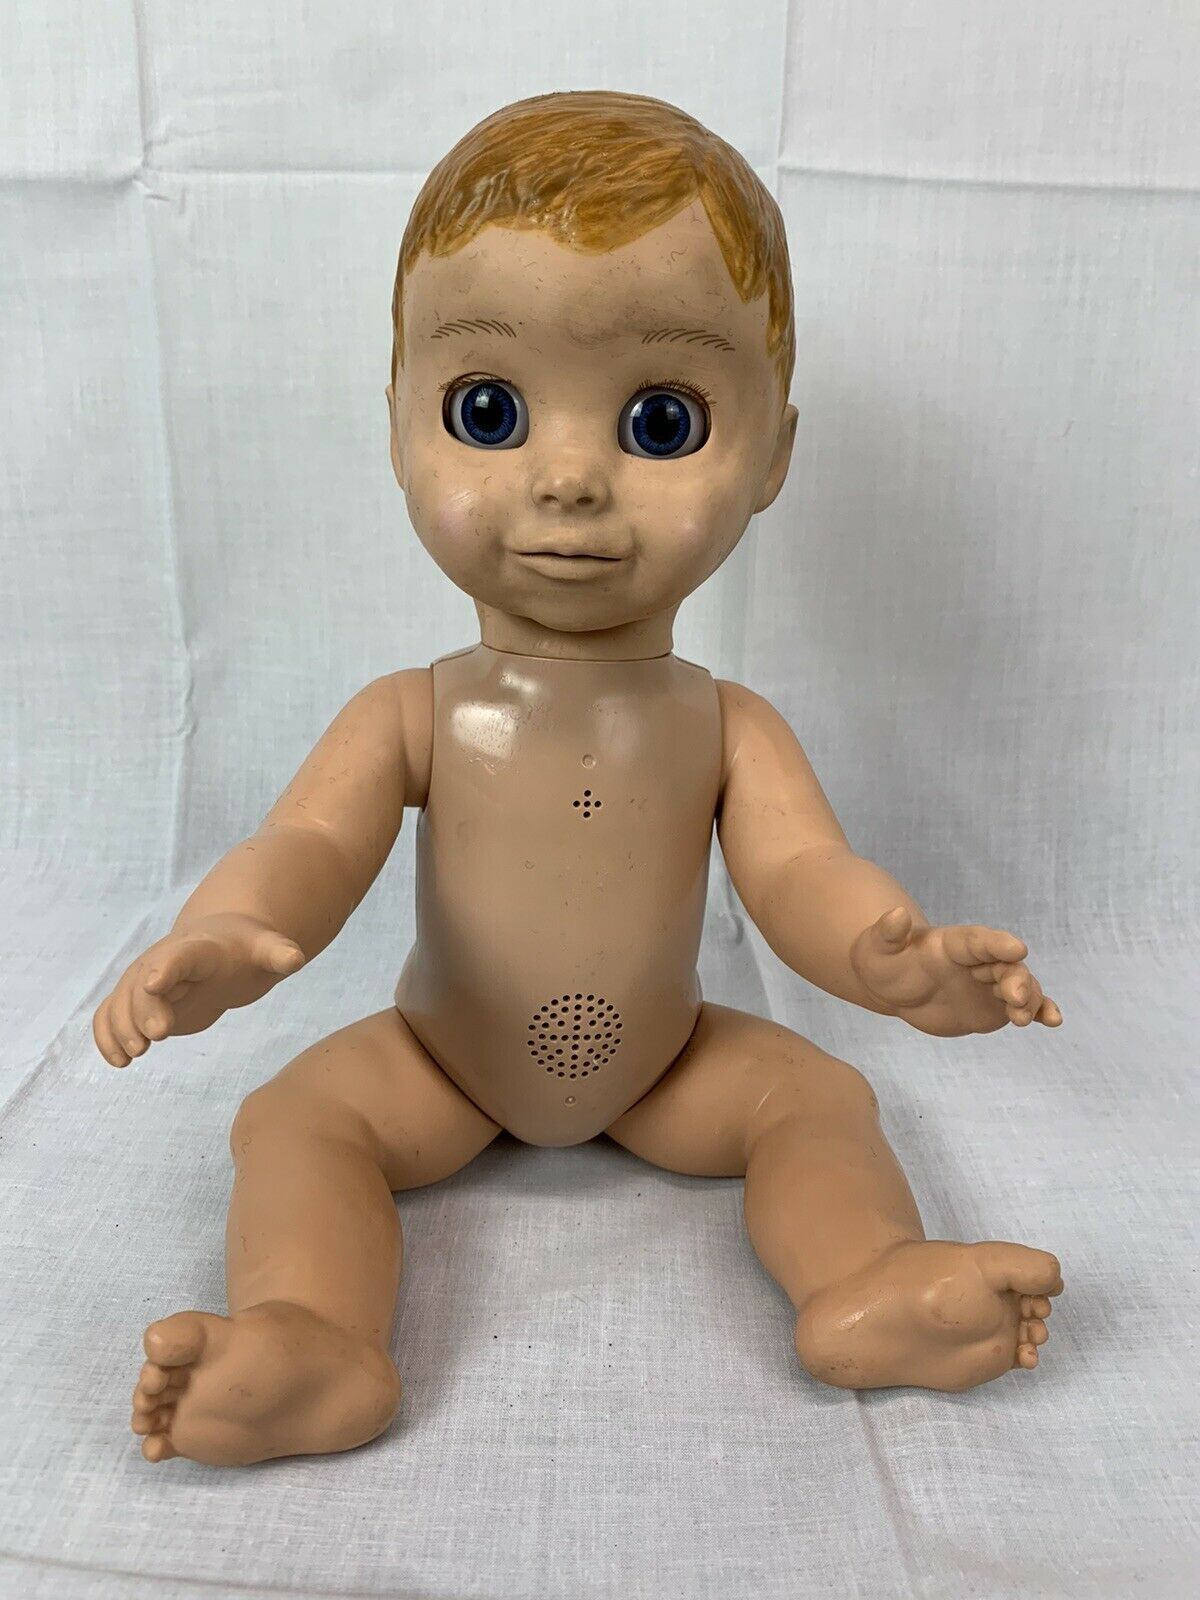 Primary image for Luva Bella Interactive Talking Baby Boy Doll Moves 22700 Spin Master Soft Face